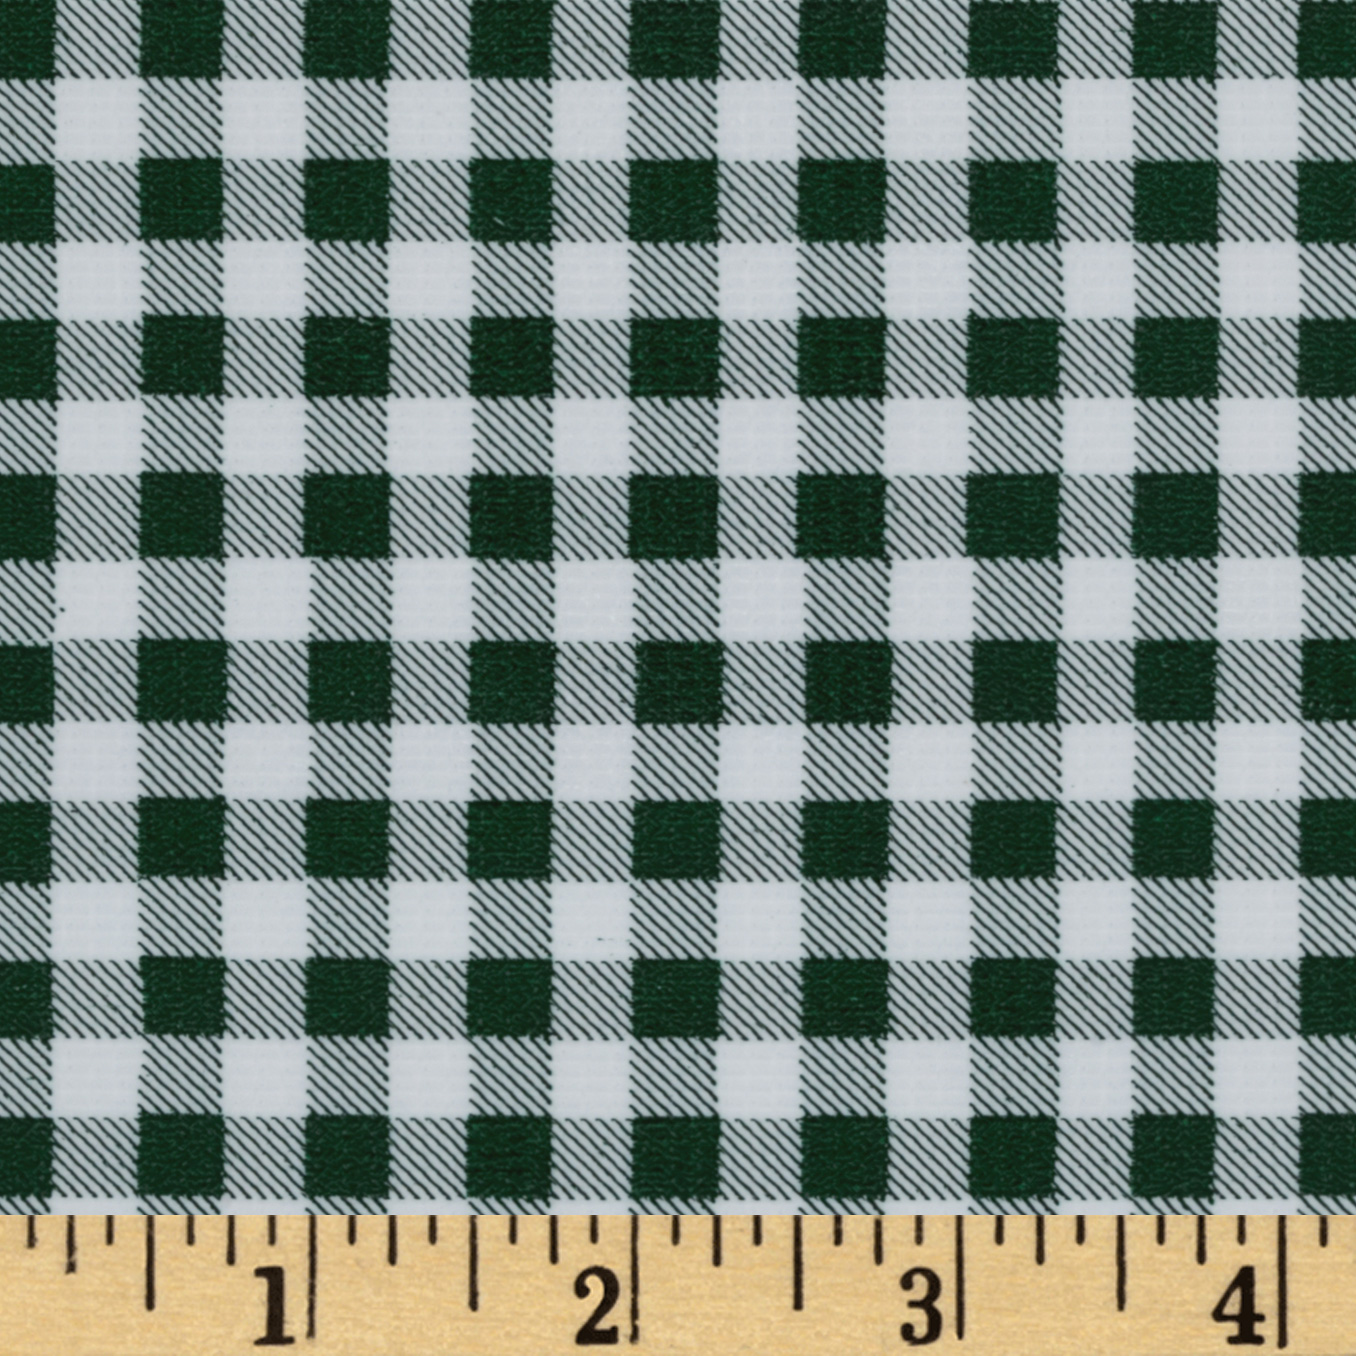 Oilcloth Gingham Bottle Green Fabric by Oilcloth International in USA